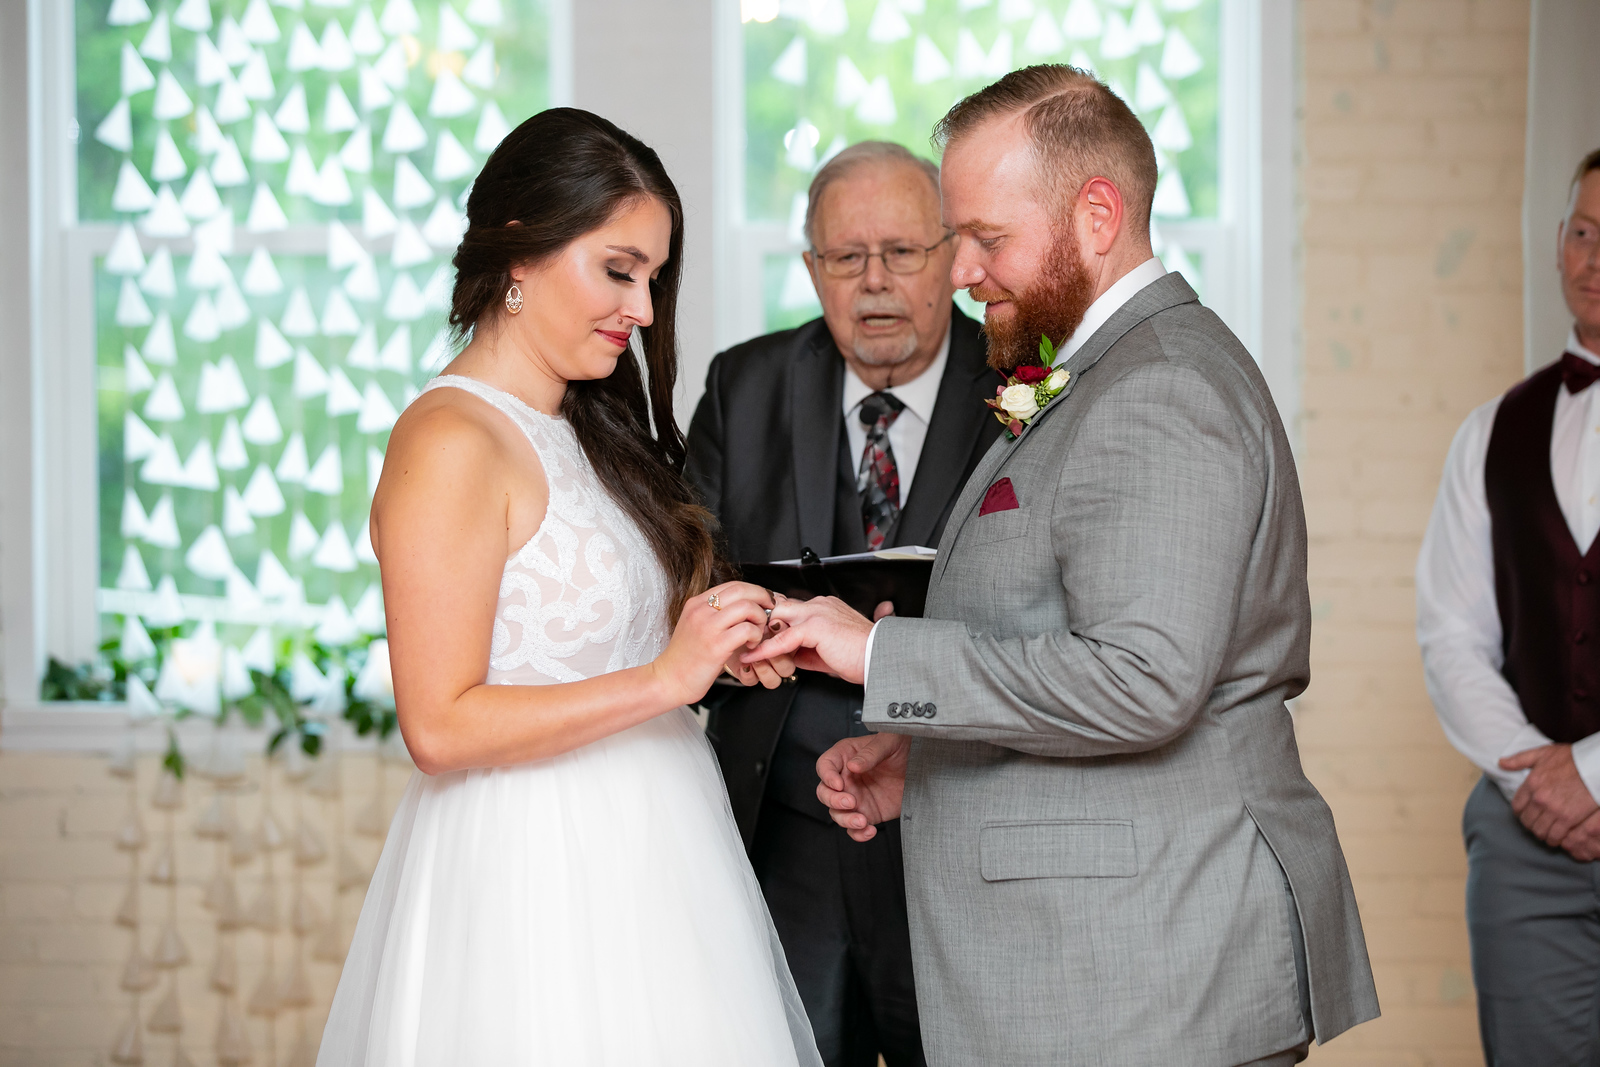 bride wearing a simple and shear modern wedding dress slipping a wedding ring on her groom wearing a grey suit as they wed